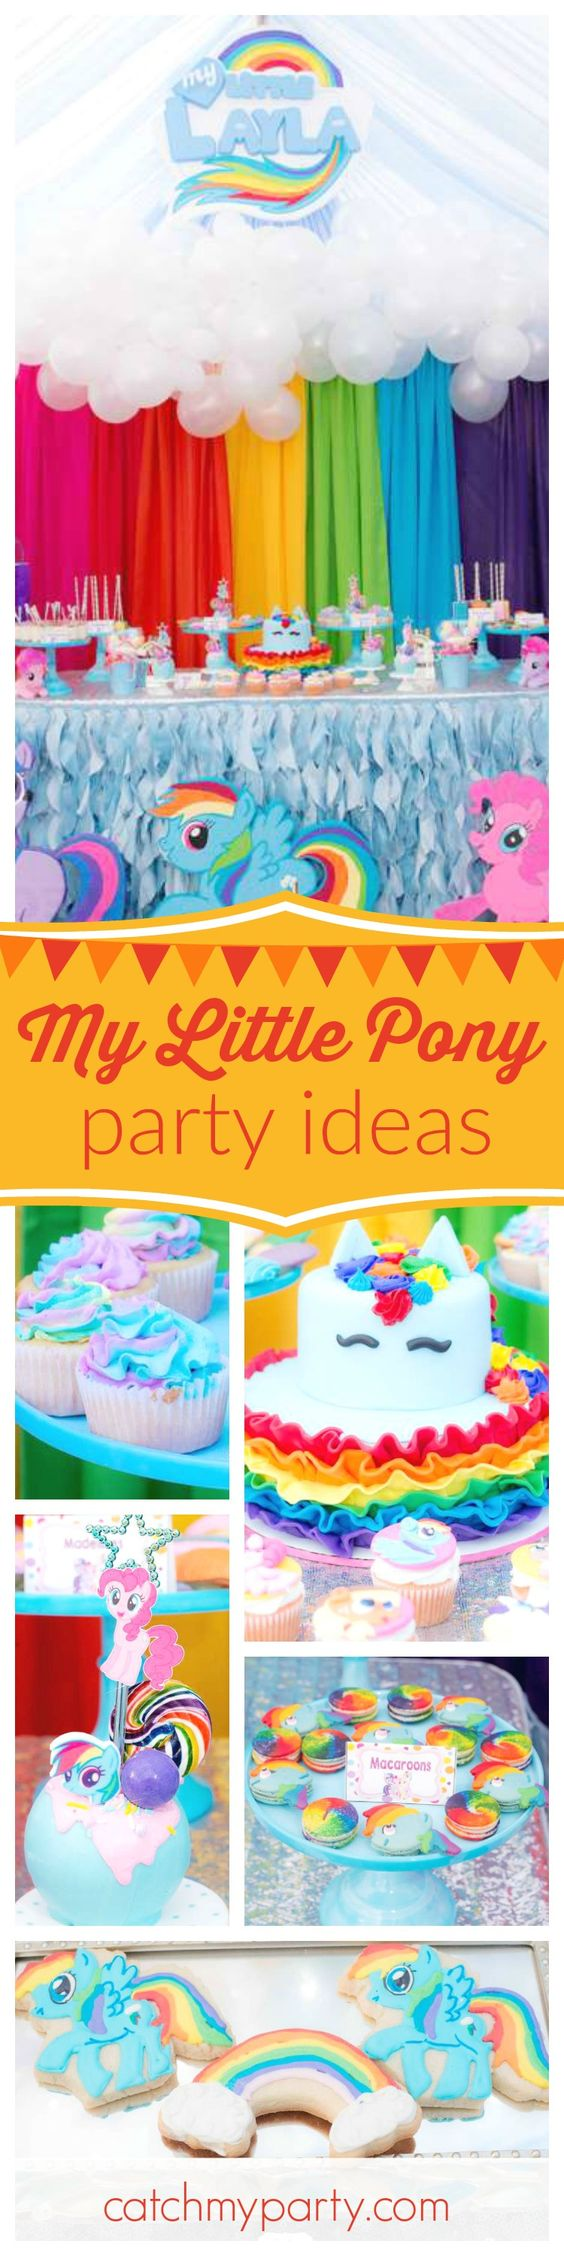 Don't miss this colorful My Little Pony birthday party